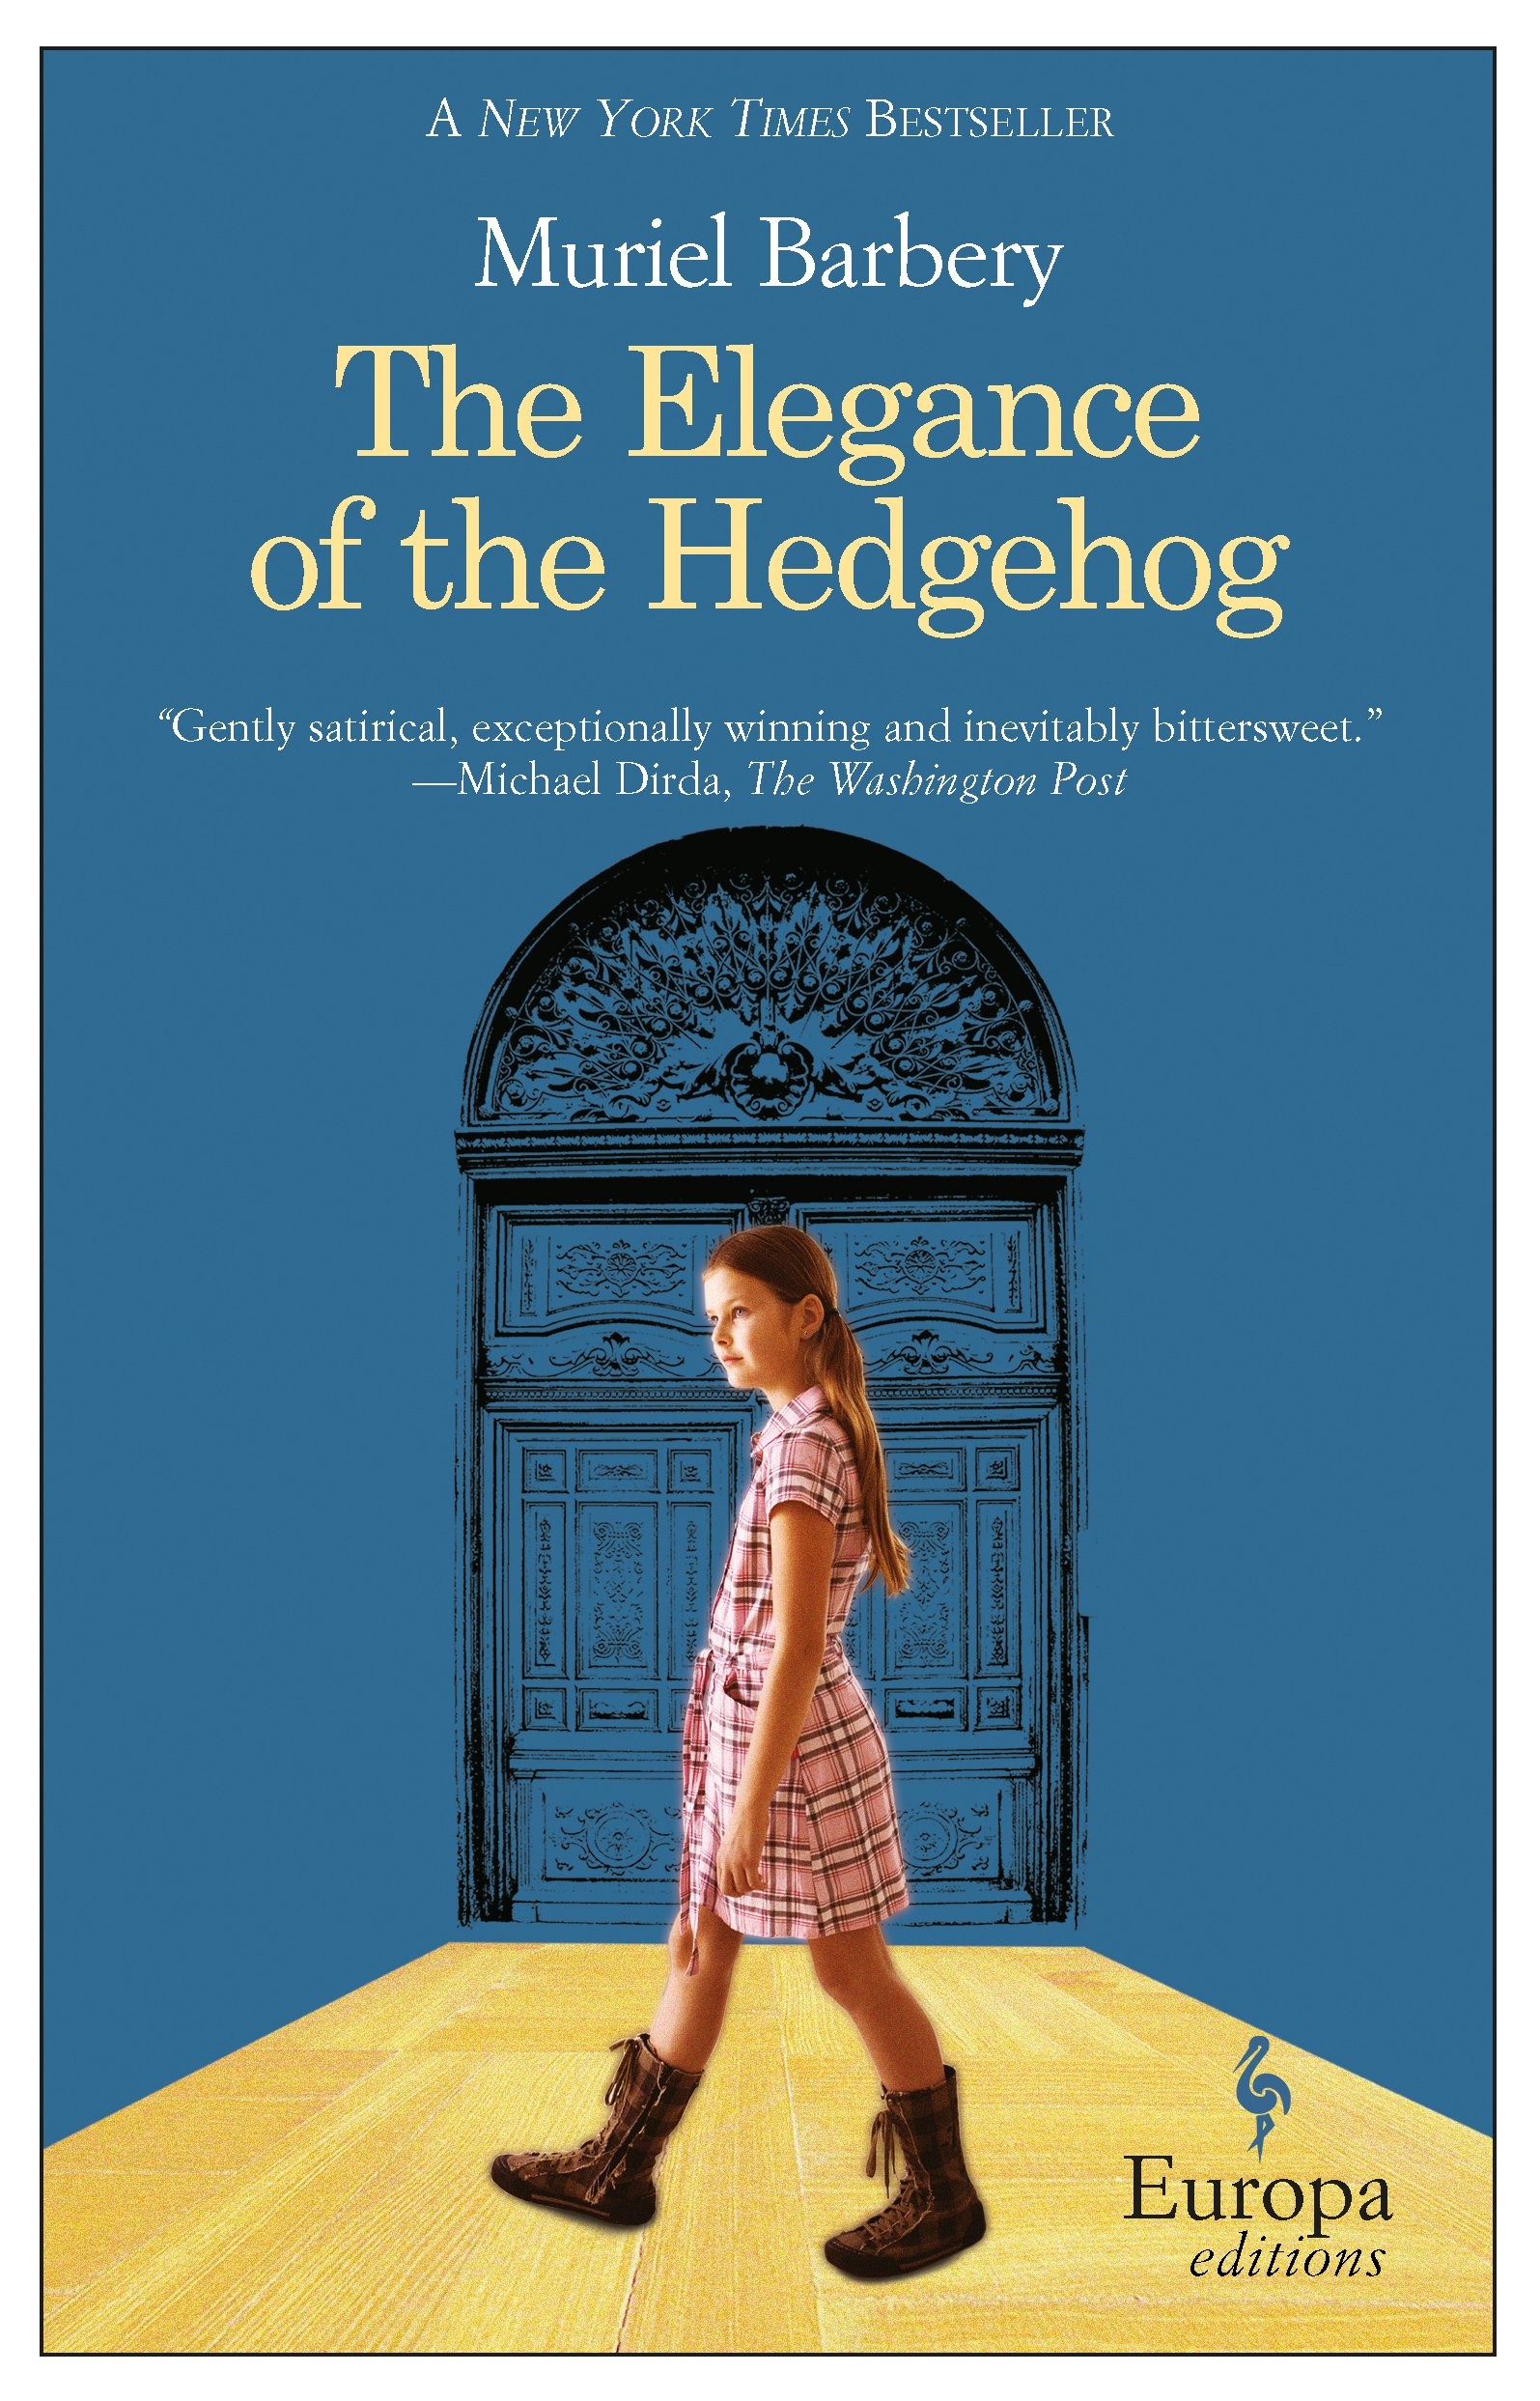 Amazon.fr - The Elegance of the Hedgehog - Muriel Barbery b0a53829d417b